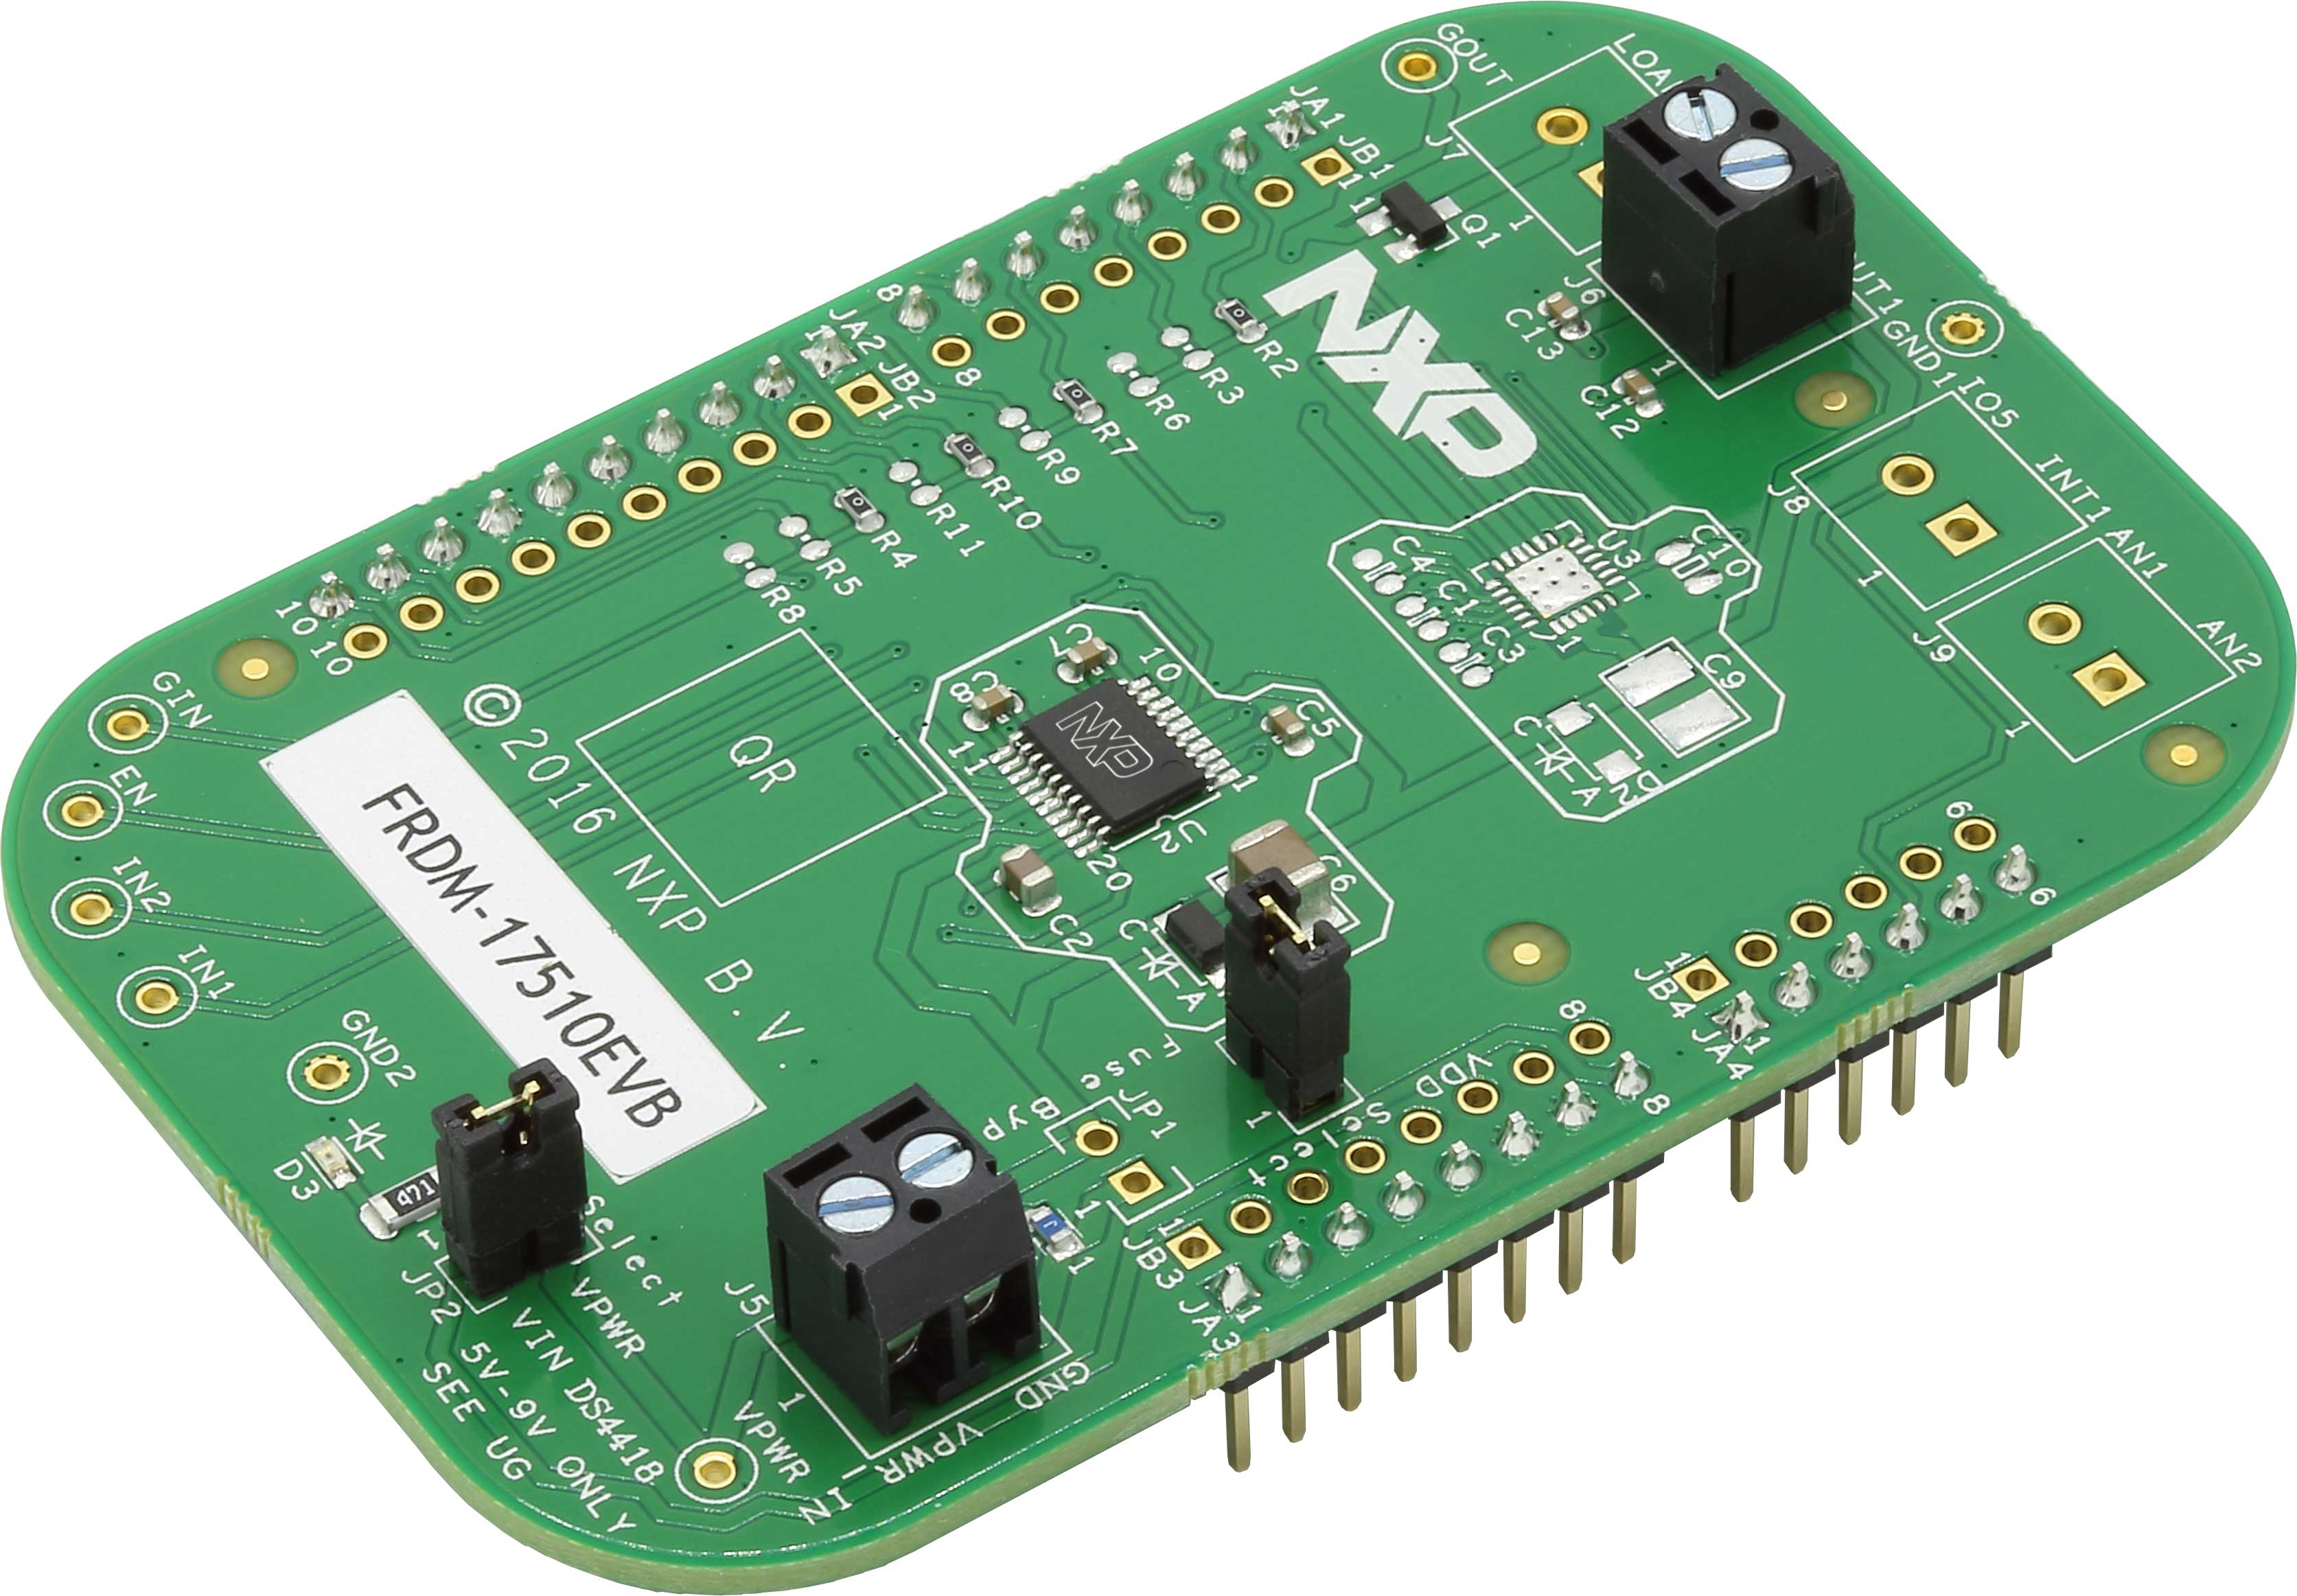 FRDM-17510EVB Freedom Development Platform